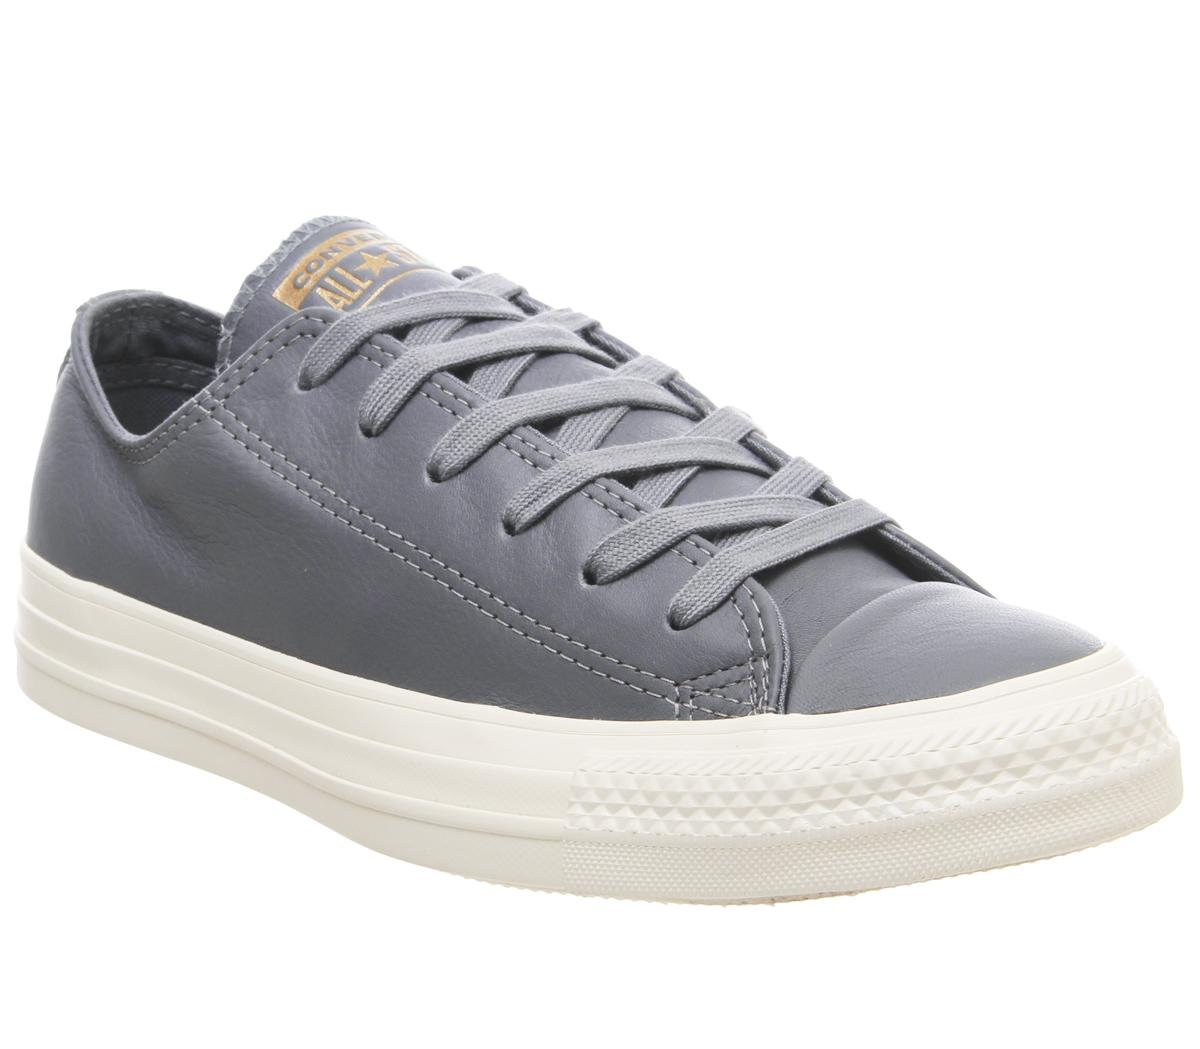 Allstar Low Leather Trainers